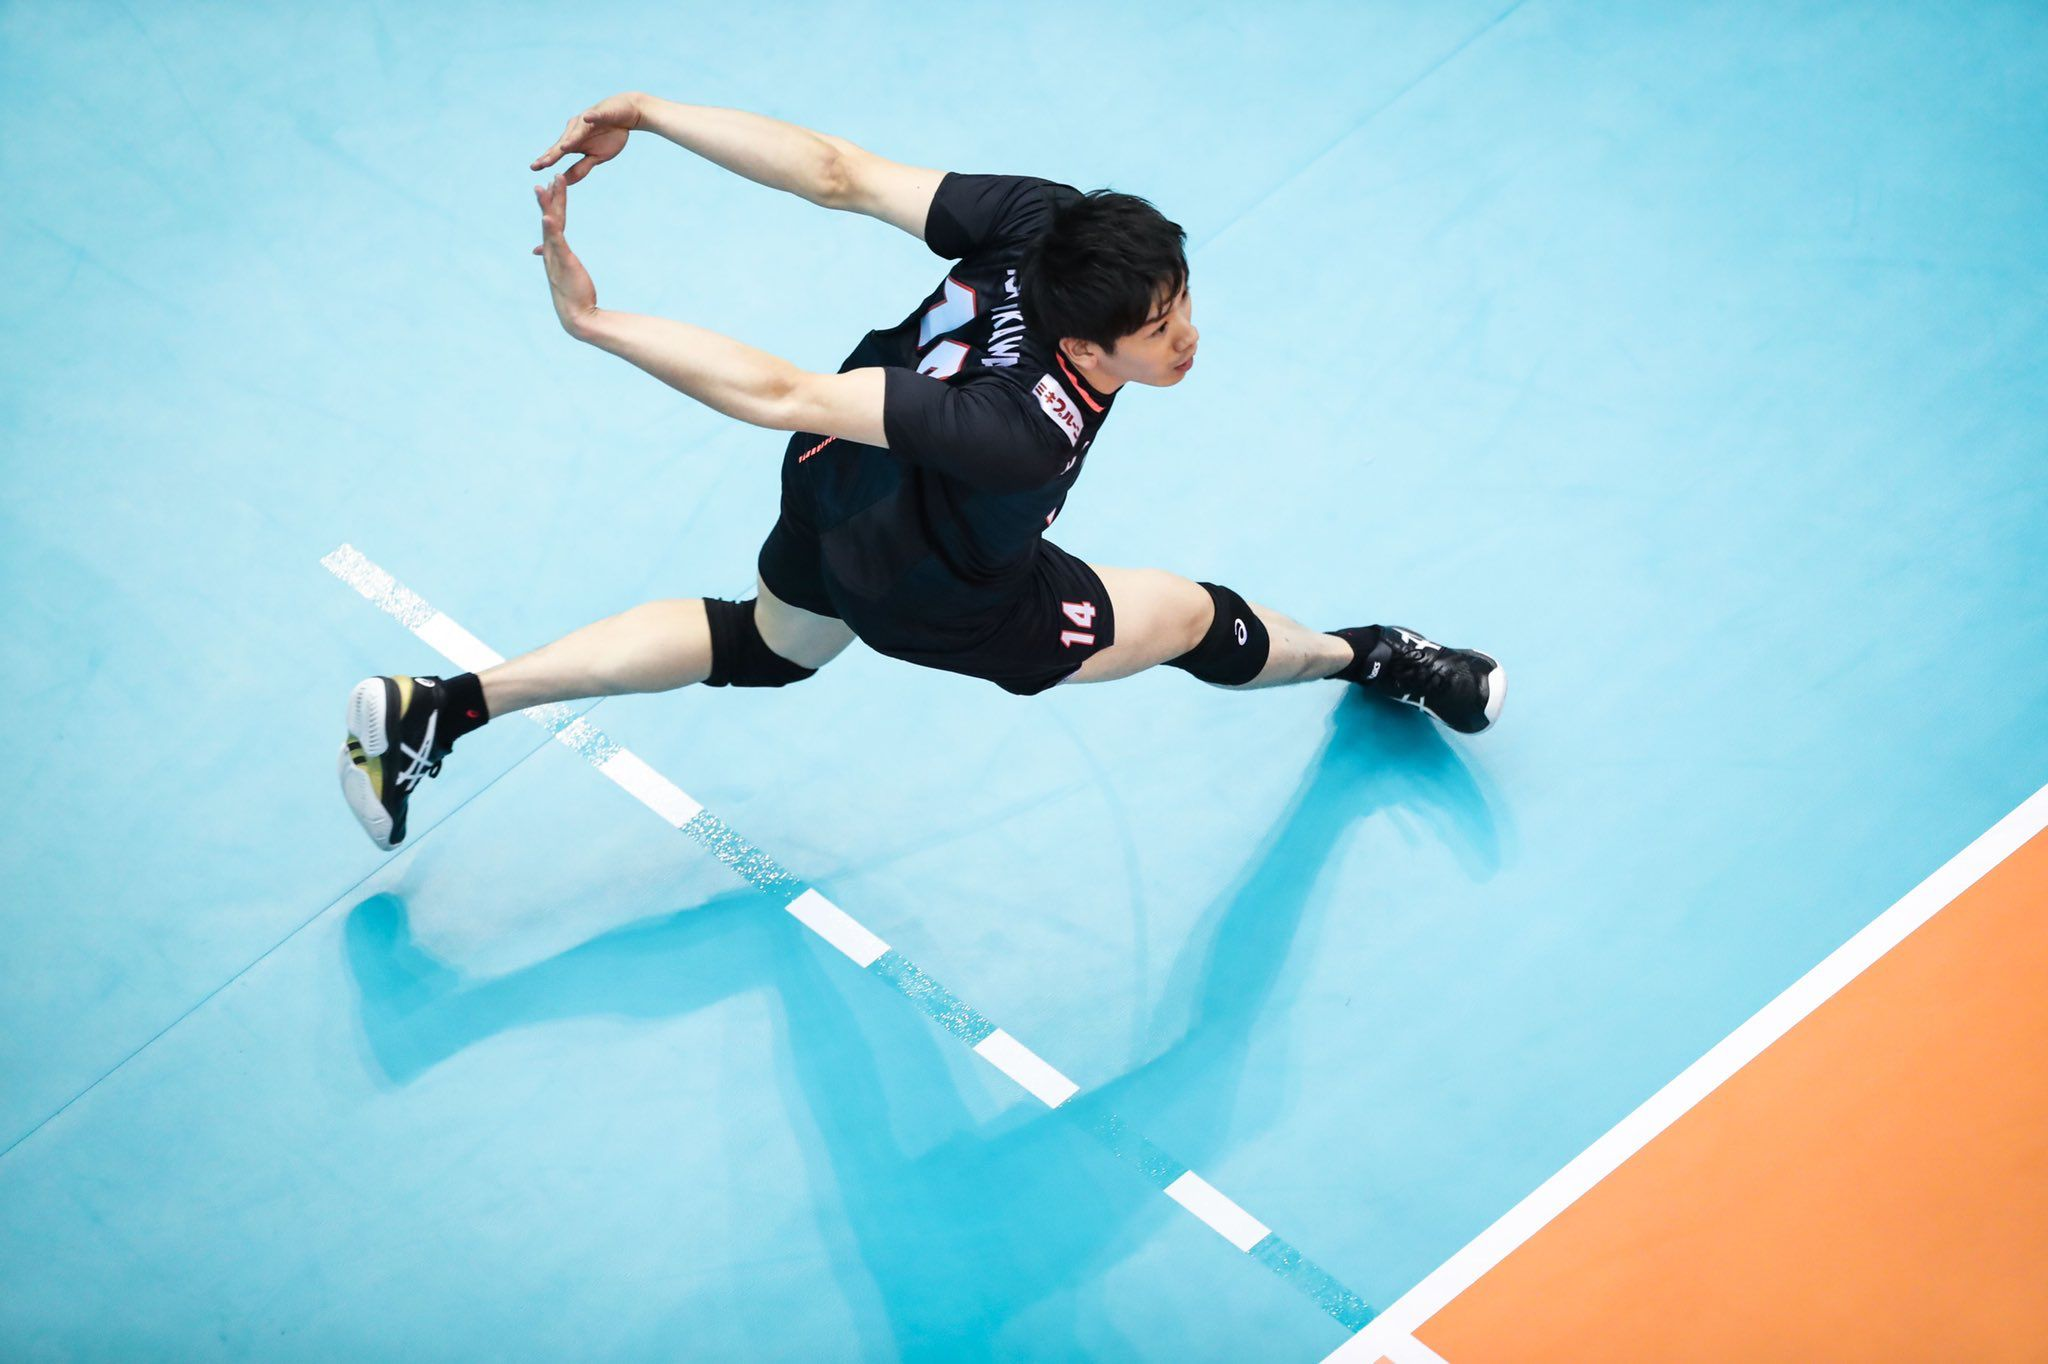 Pin By Tomo On Bong Chuyền Volleyball Photography Volleyball Poses Japan Volleyball Team